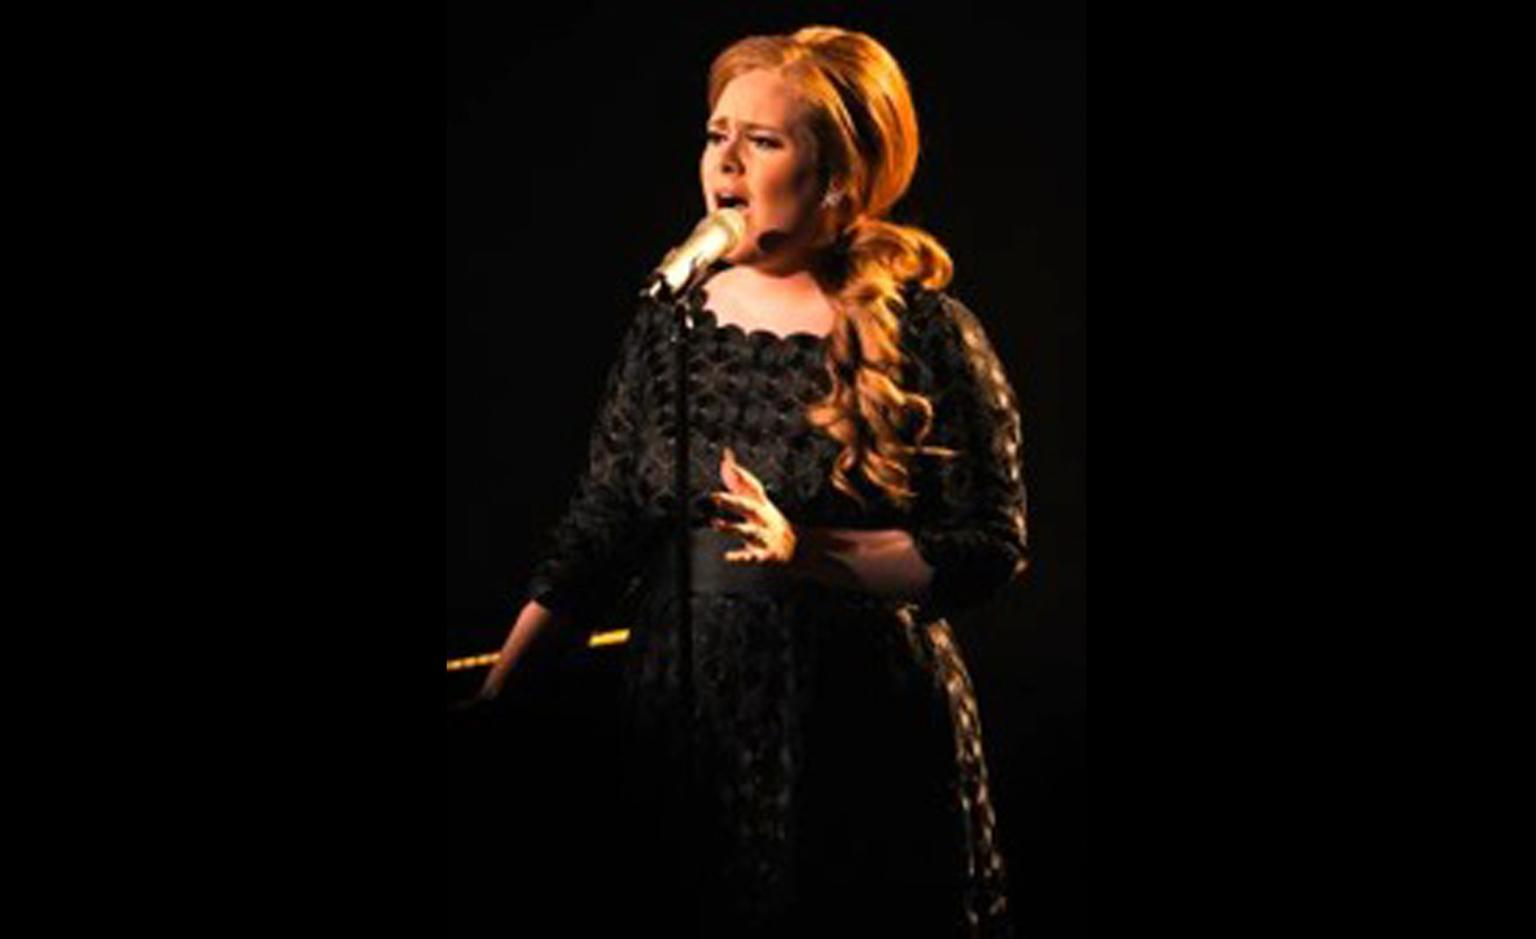 Adele performs at the MTV Video Music Awards in LA wearing Harry Winston diamond earrings.